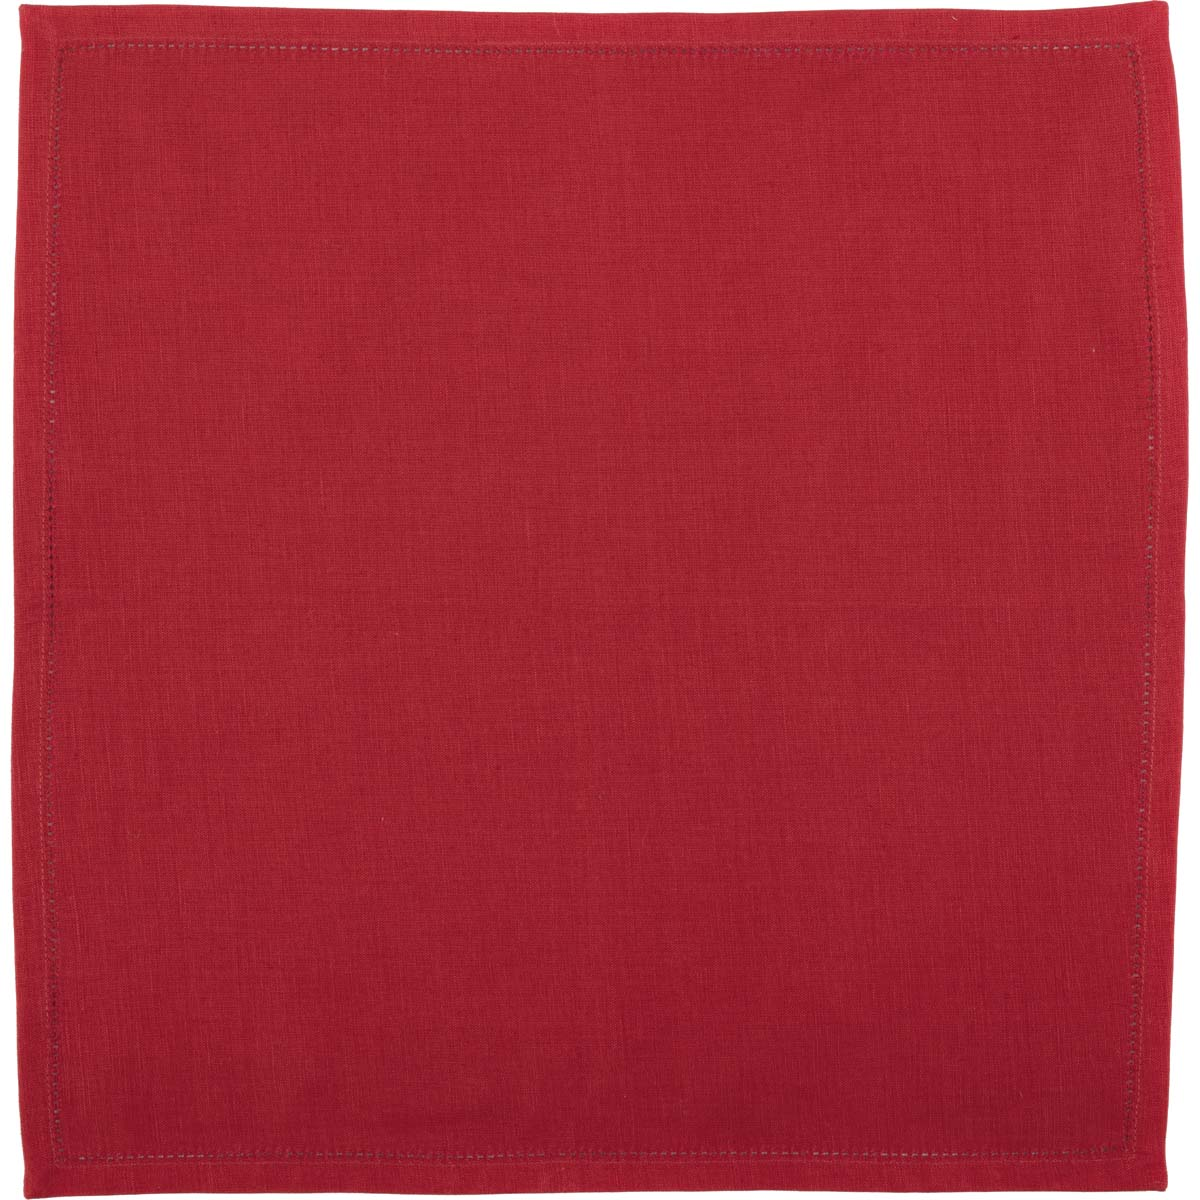 Tara Red Napkin Set of 6 18x18 - Woodrol